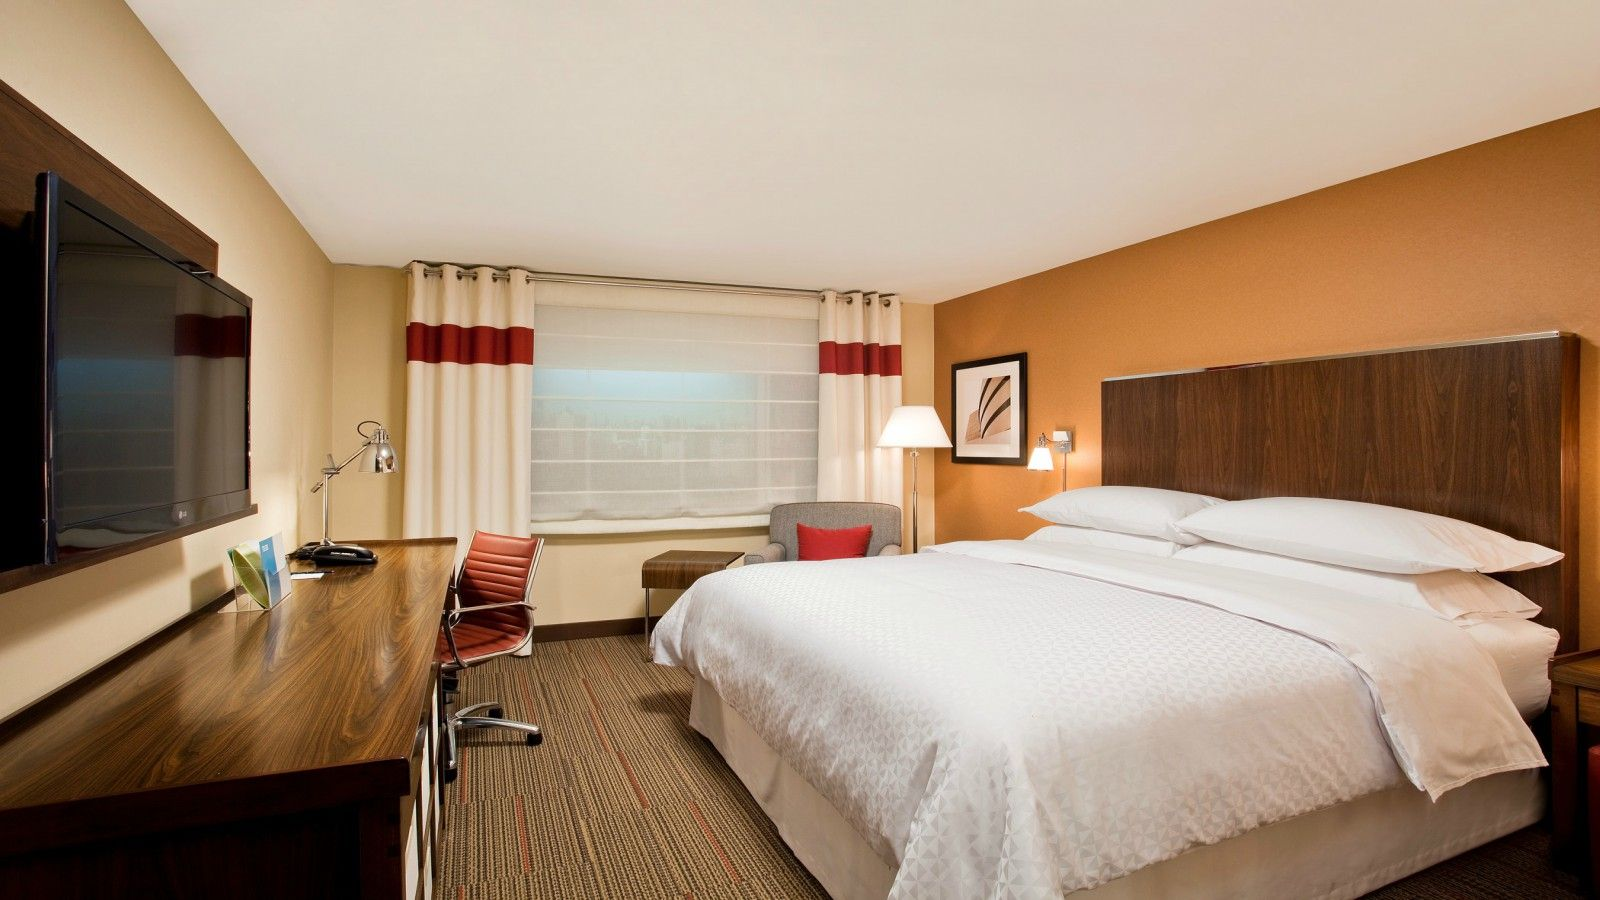 hotels near dfw | four pointssheraton dallas fort worth